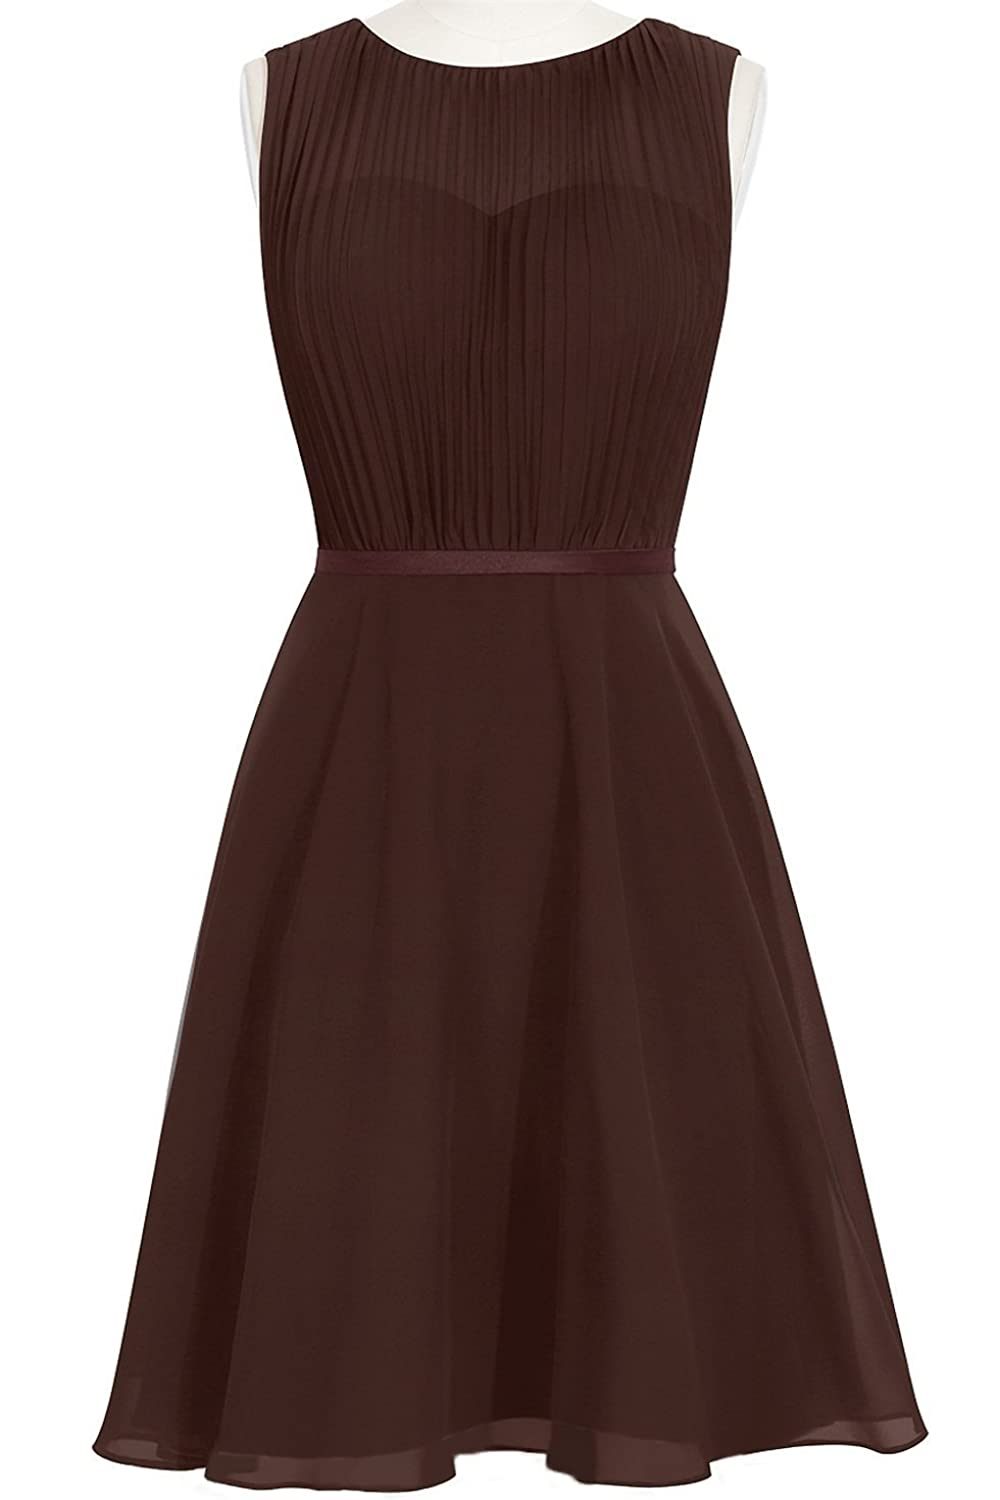 MittyDresses 2015 New Cocktail Homecoming Dresses for Girl Evening Party Size 18W US Chocolate